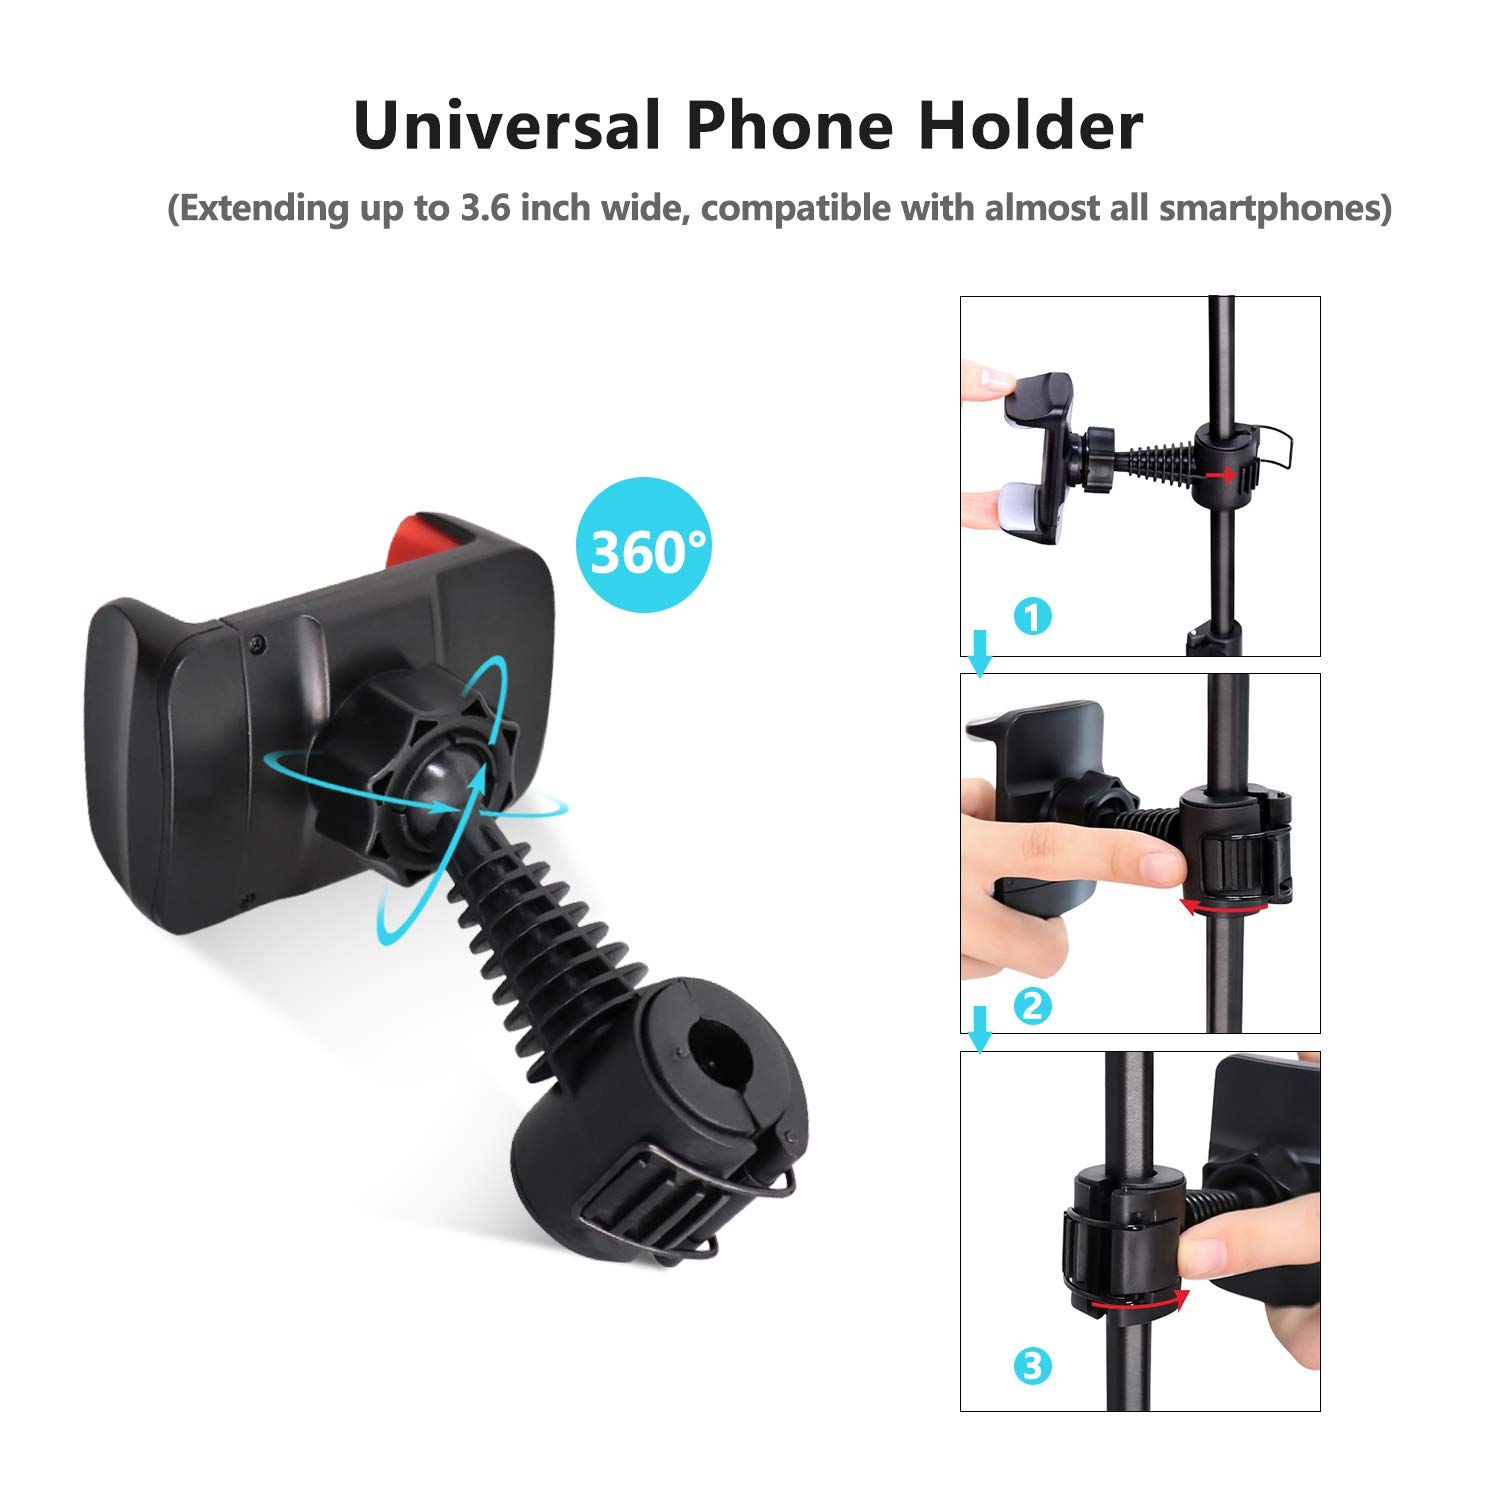 UBeesize 10.2'' Selfie Ring Light with Tripod Stand & Cell Phone Holder for Live Stream/Makeup, Mini Led Camera Ringlight for YouTube Video/Photography Compatible with iPhone Android (Upgraded) by UBeesize (Image #4)